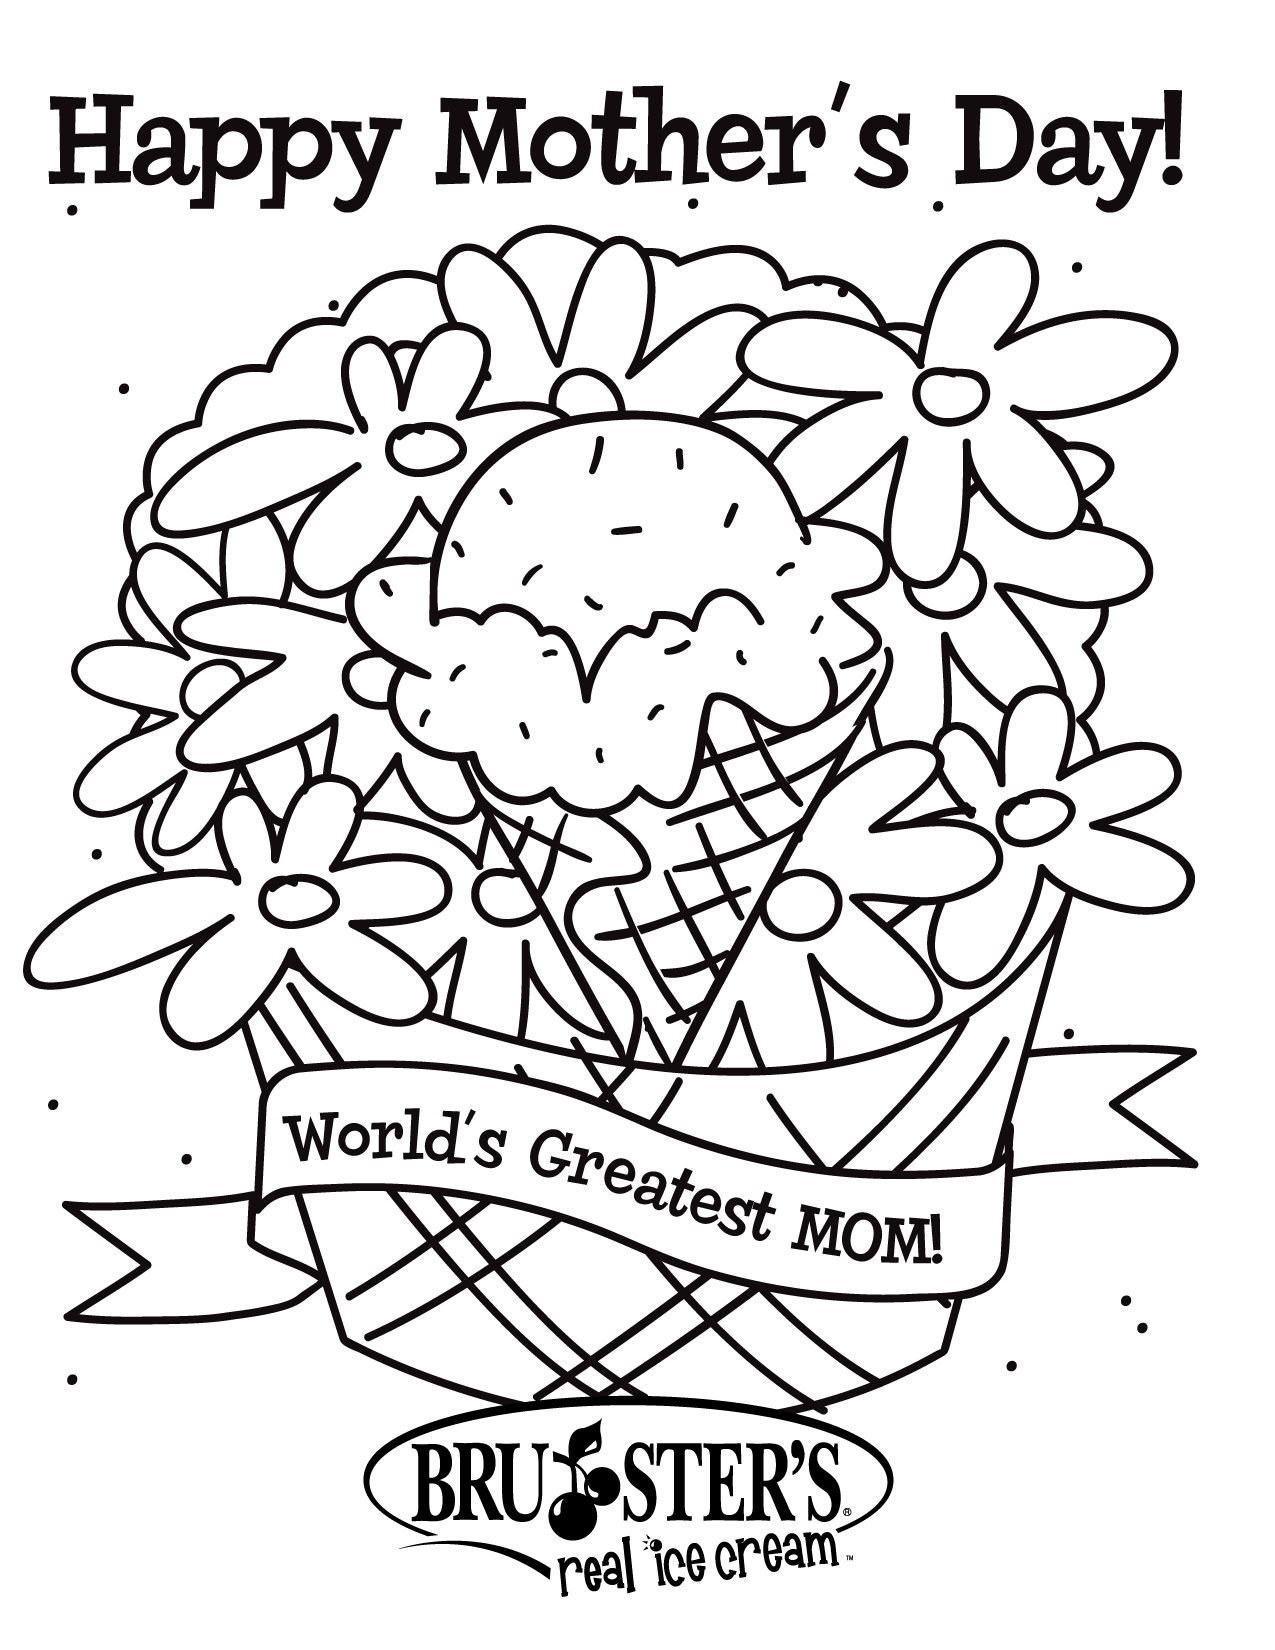 engaging mothers day coloring printable to pretty free printable download of mothers day coloring pages 3 mother s